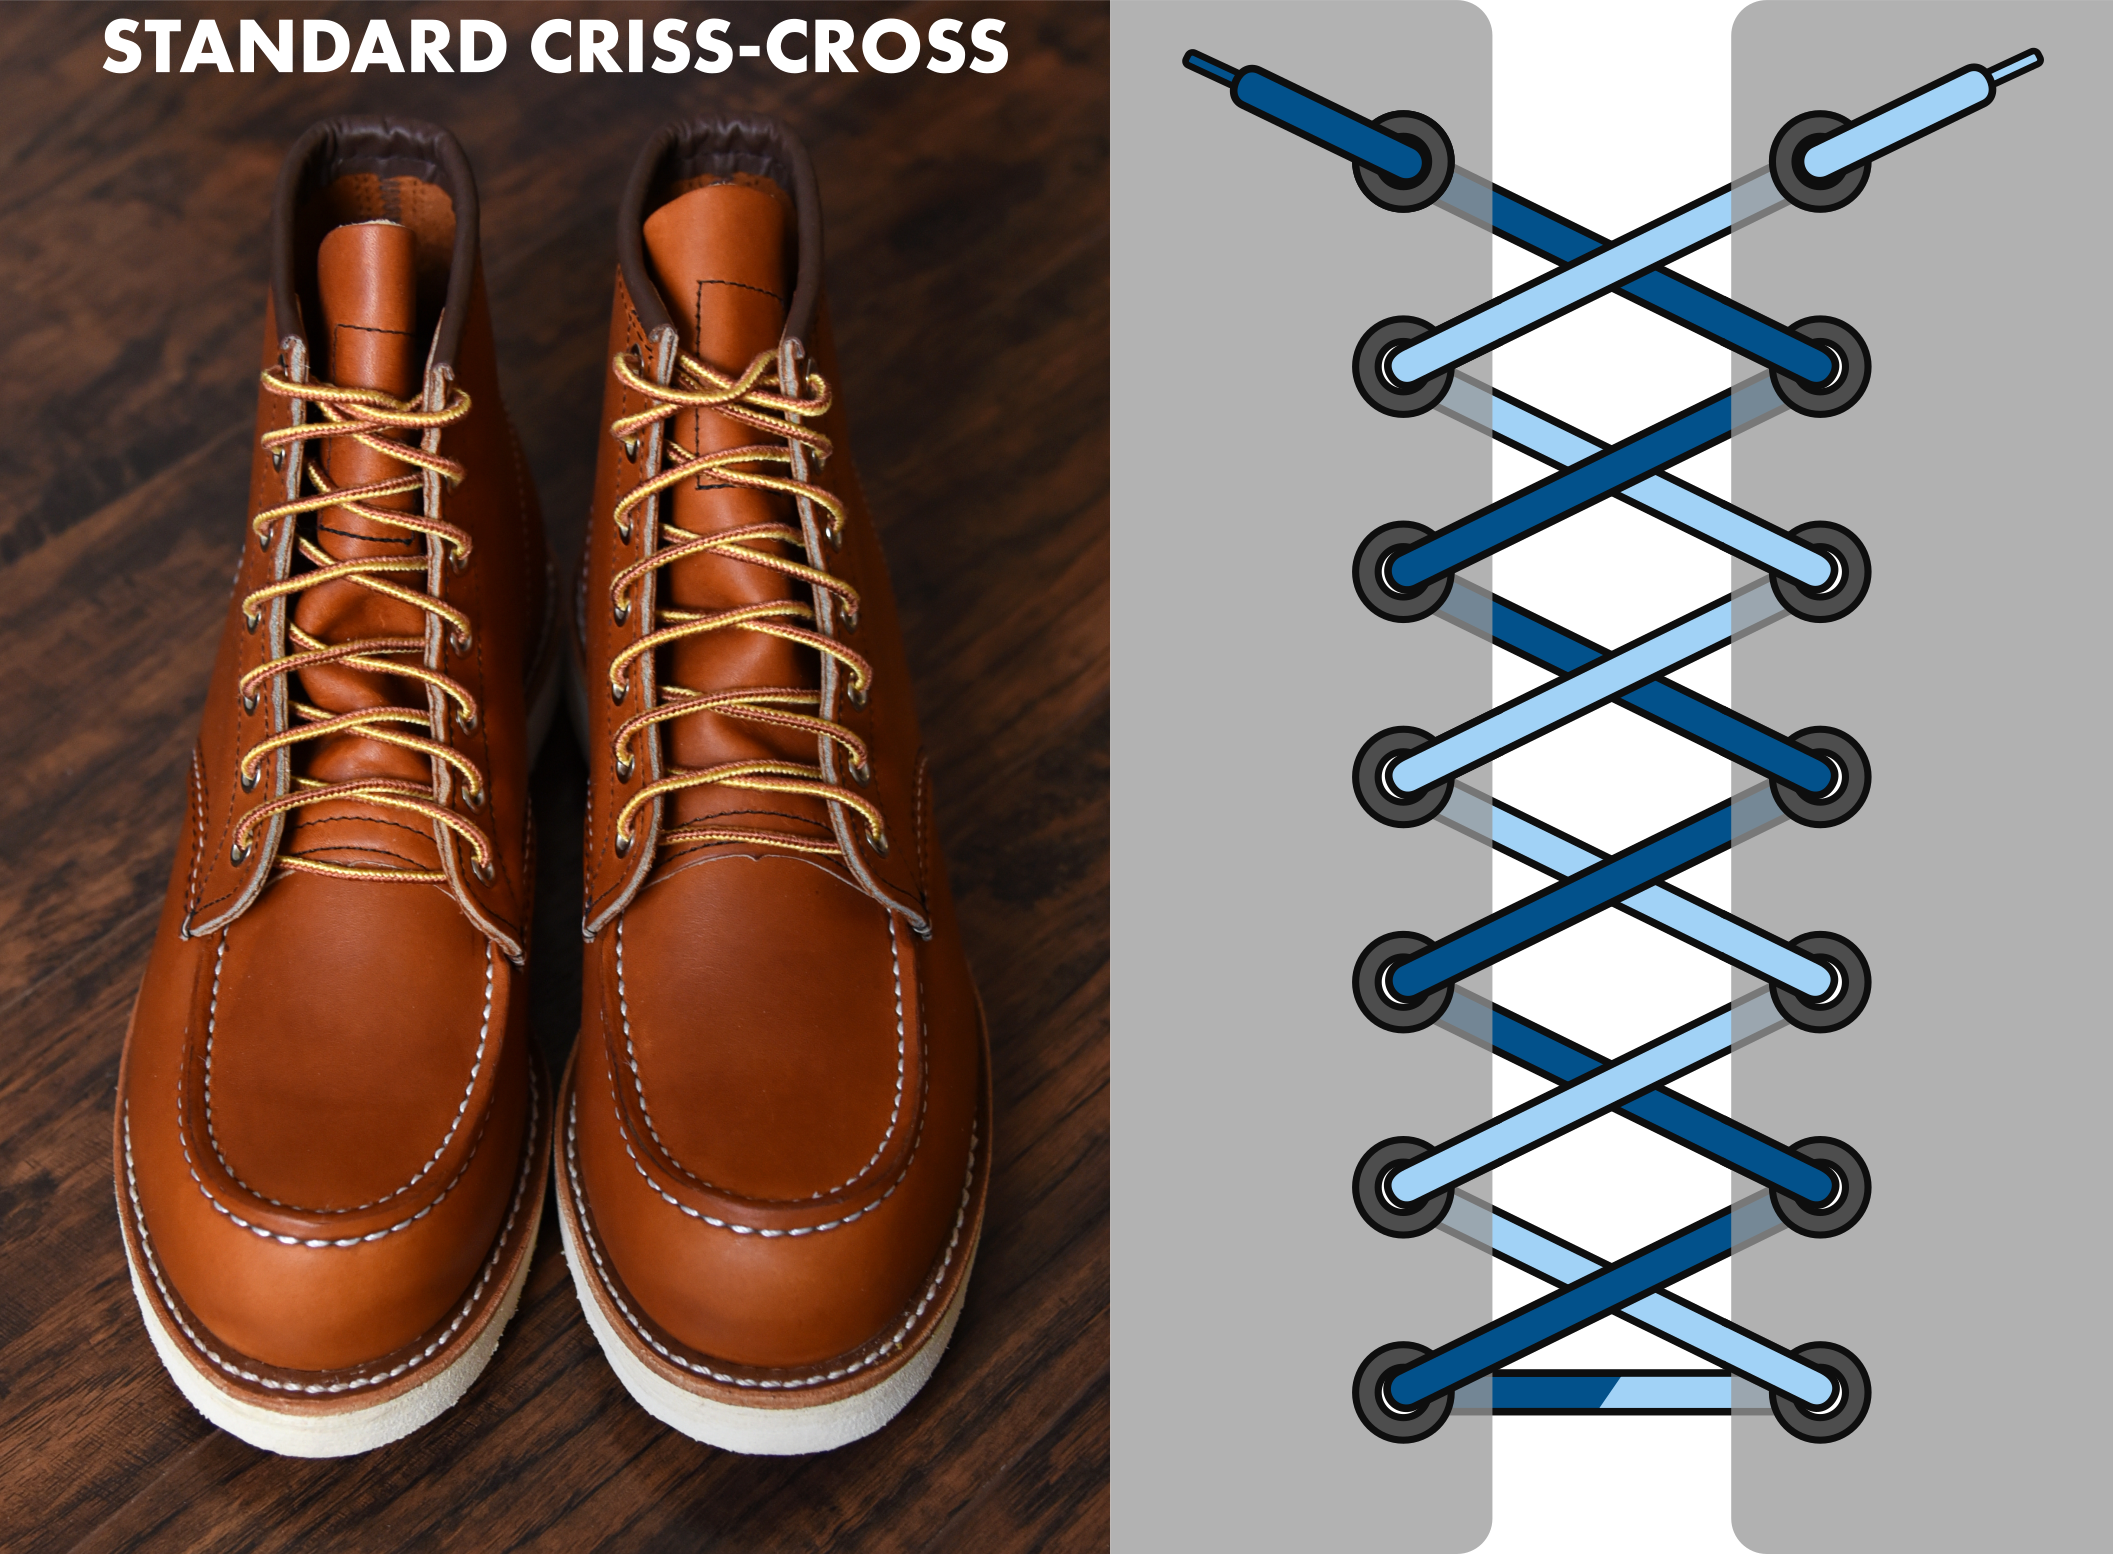 Standard criss cross lacing diagram for boots